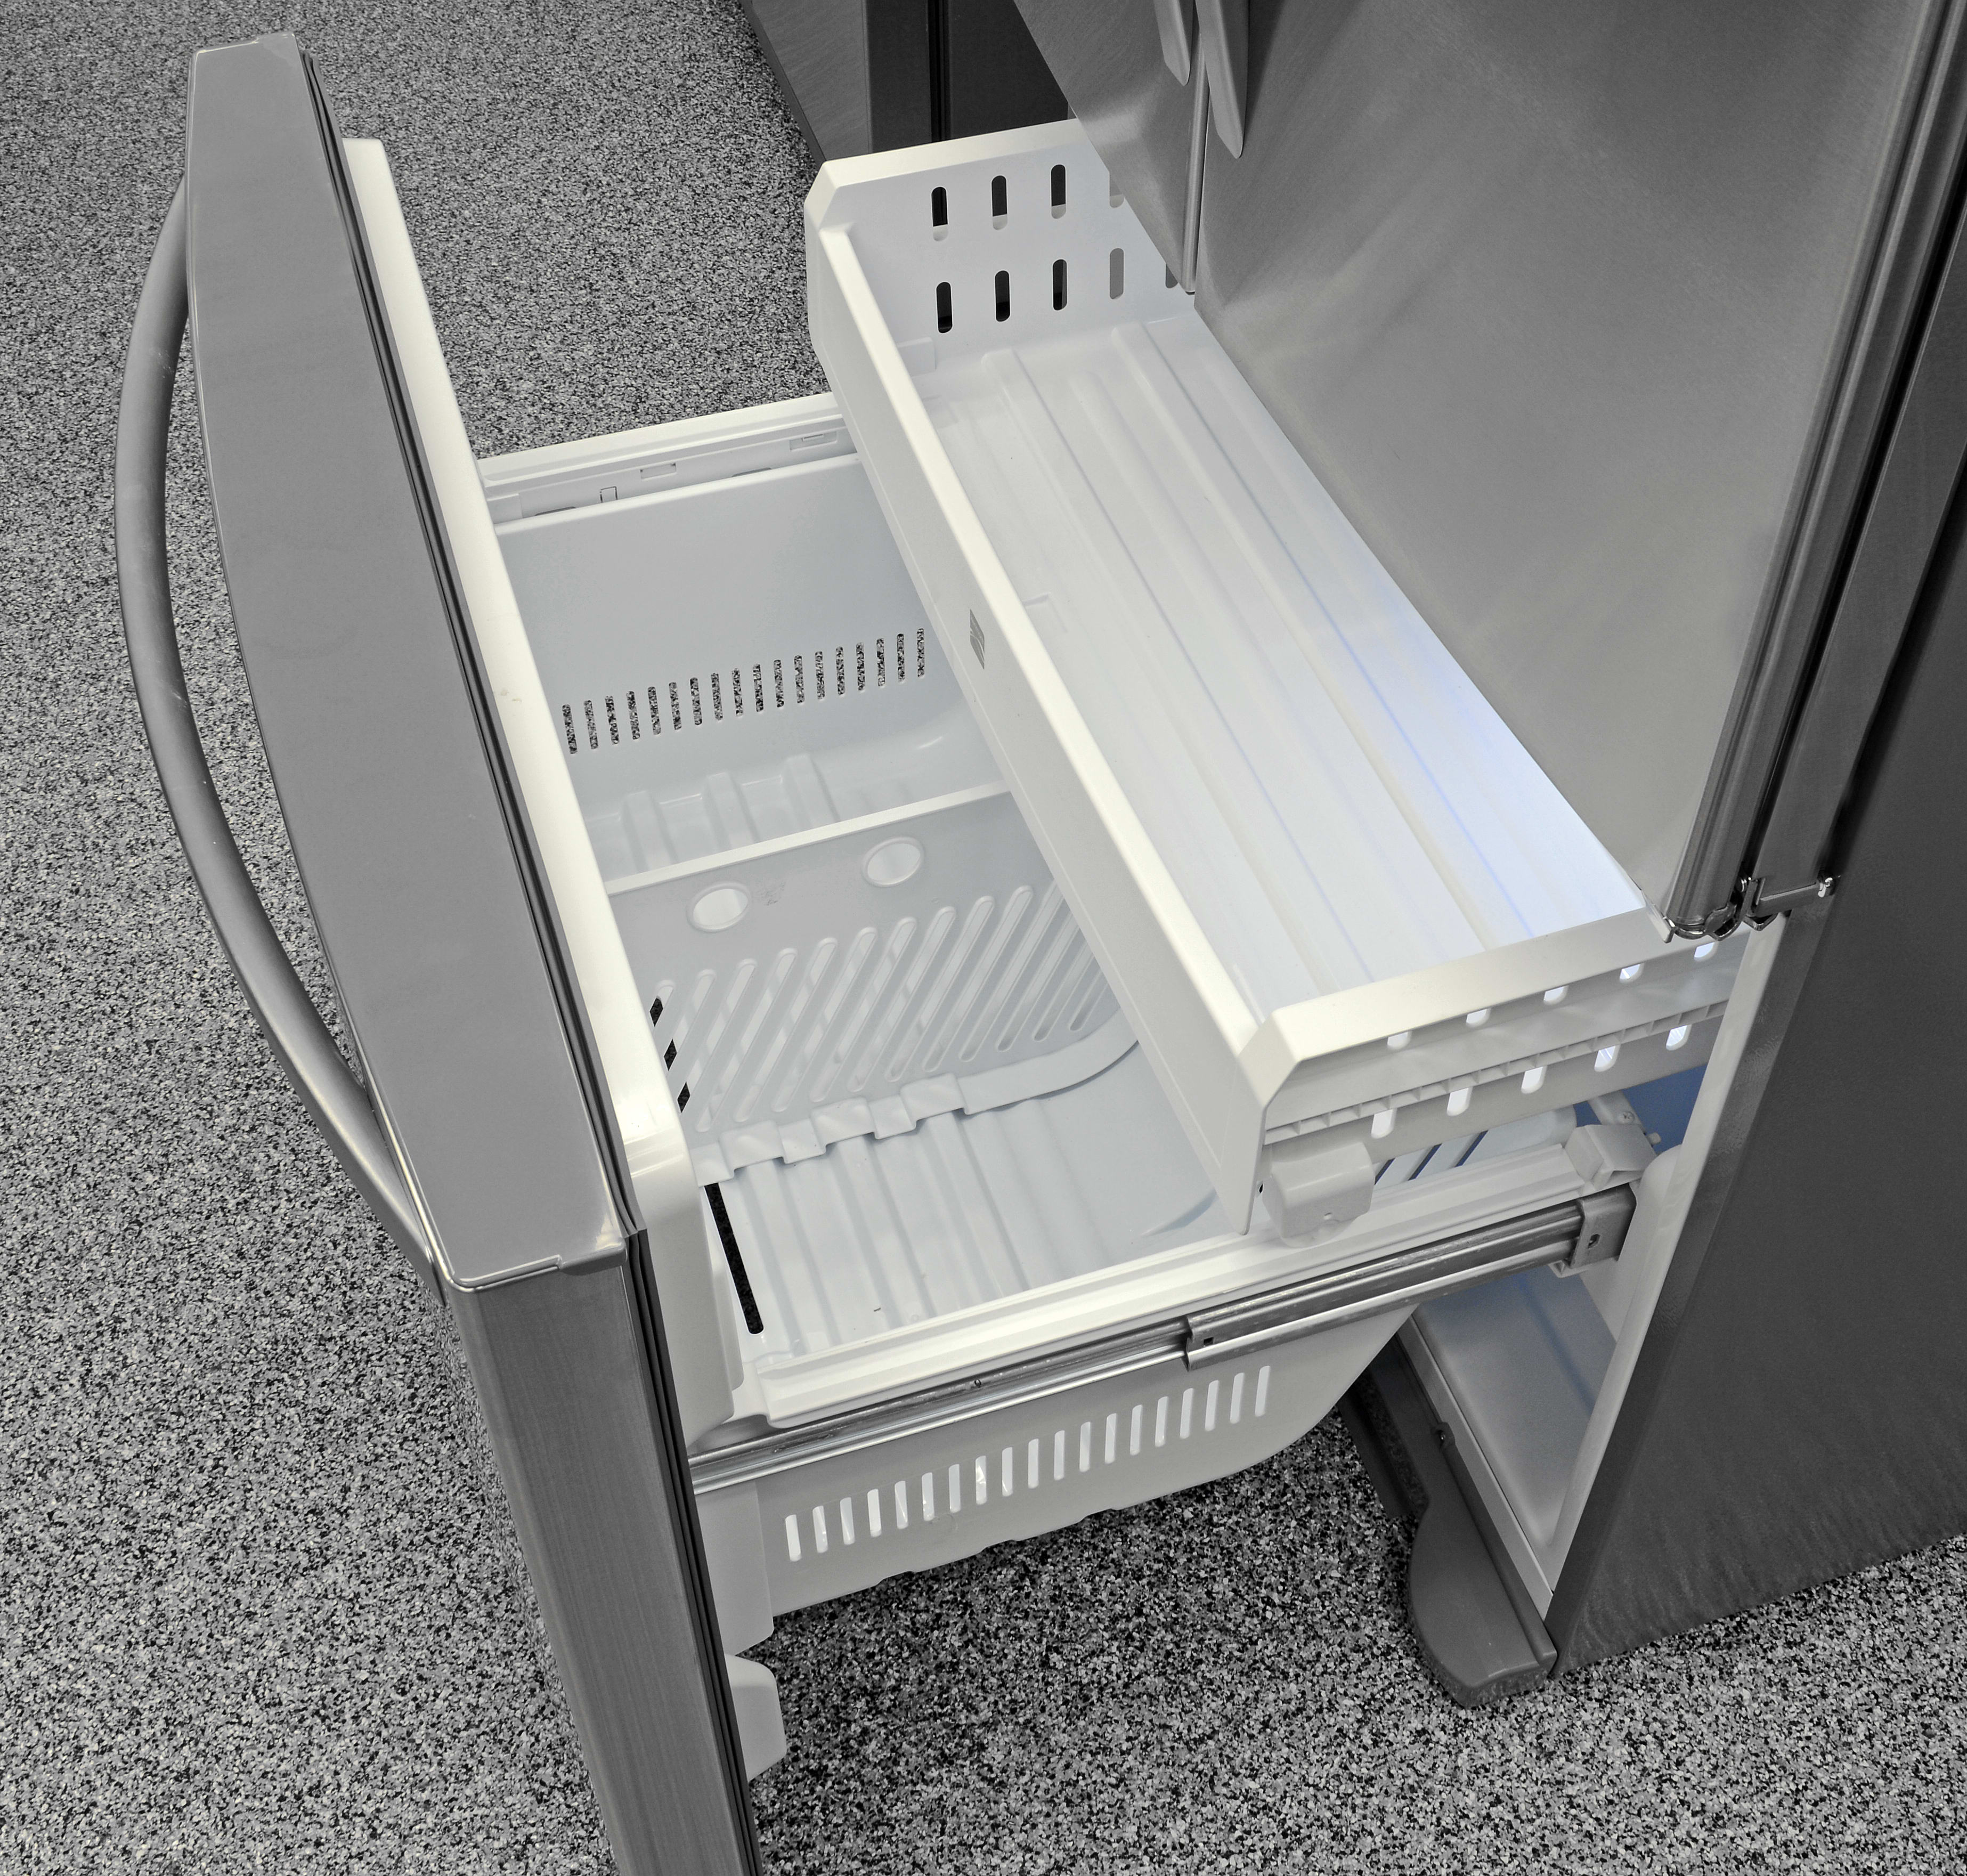 The Kenmore 70333's basic pull-out freezer comes with two sliding drawers.